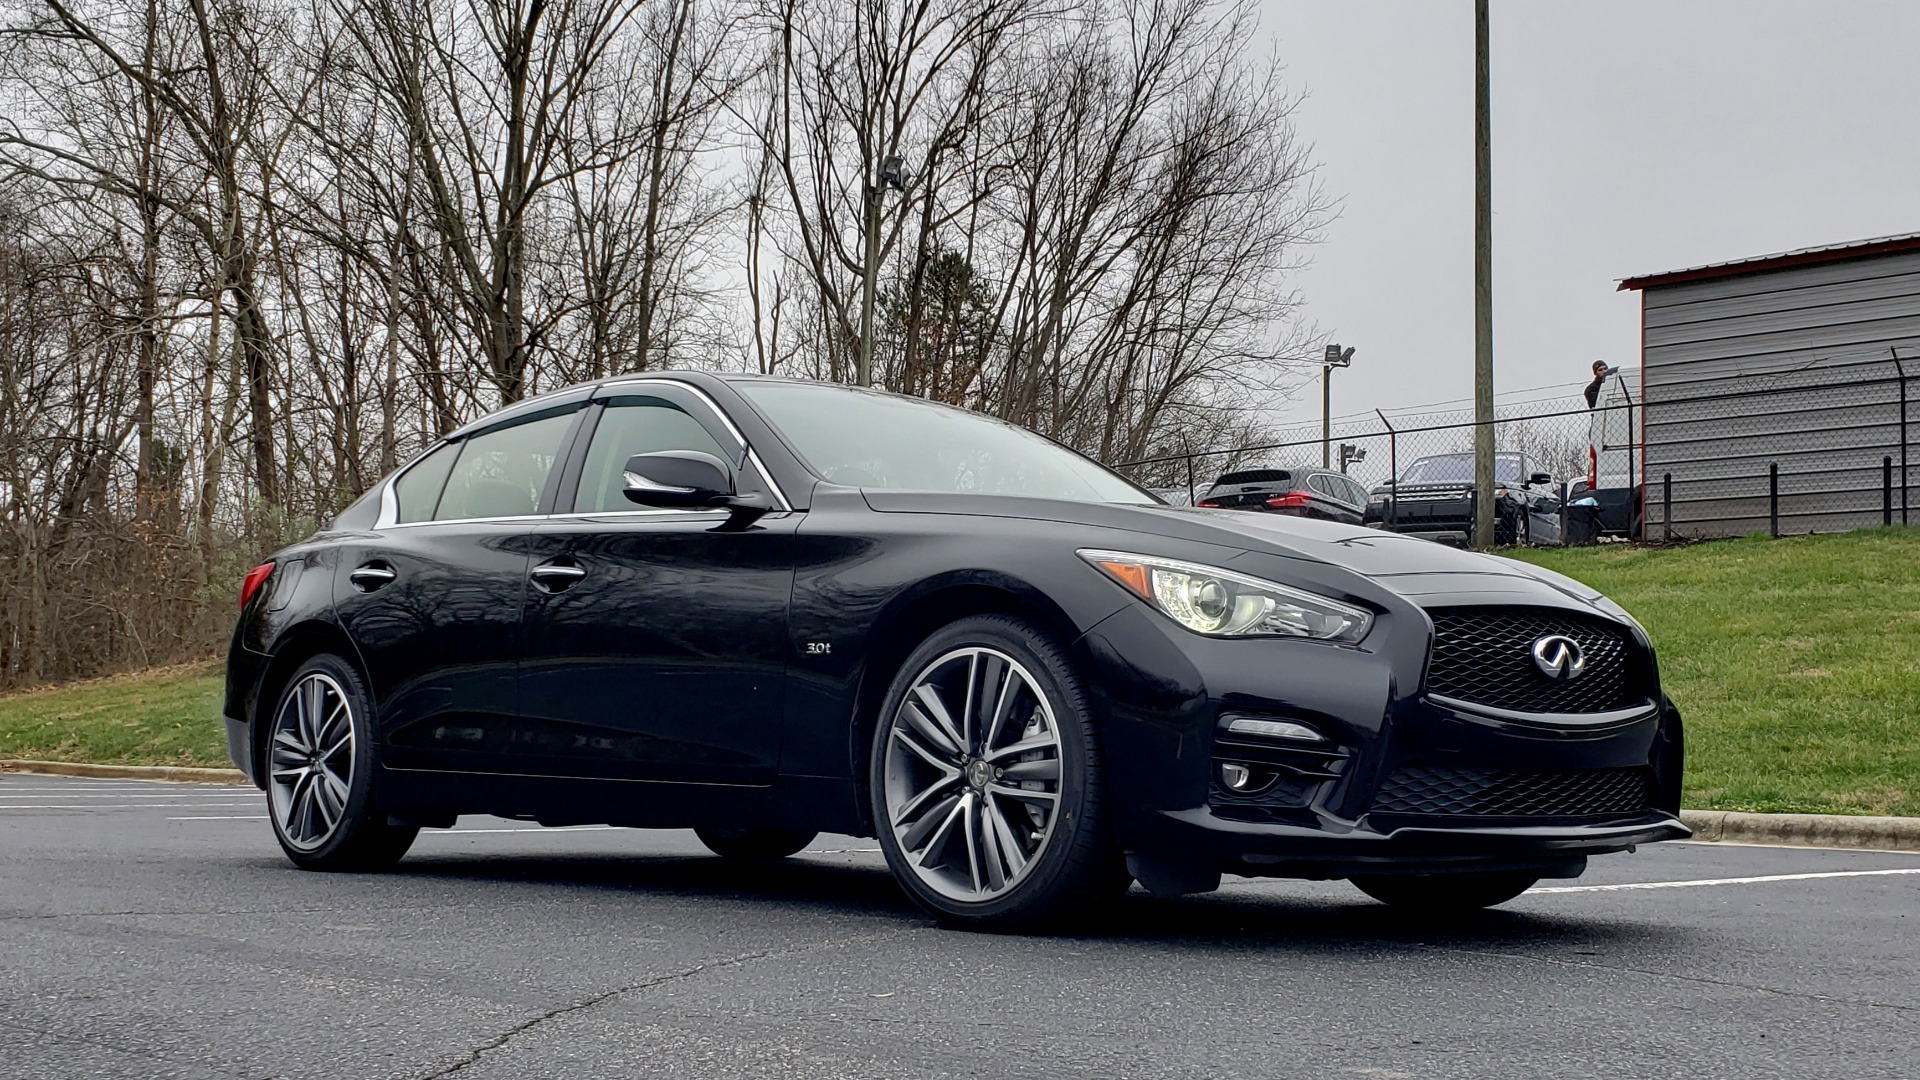 Used 2016 INFINITI Q50 3.0t PREMIUM SPORT AWD / NAV / SUNROOF / HTD STS / REARVIEW for sale Sold at Formula Imports in Charlotte NC 28227 11